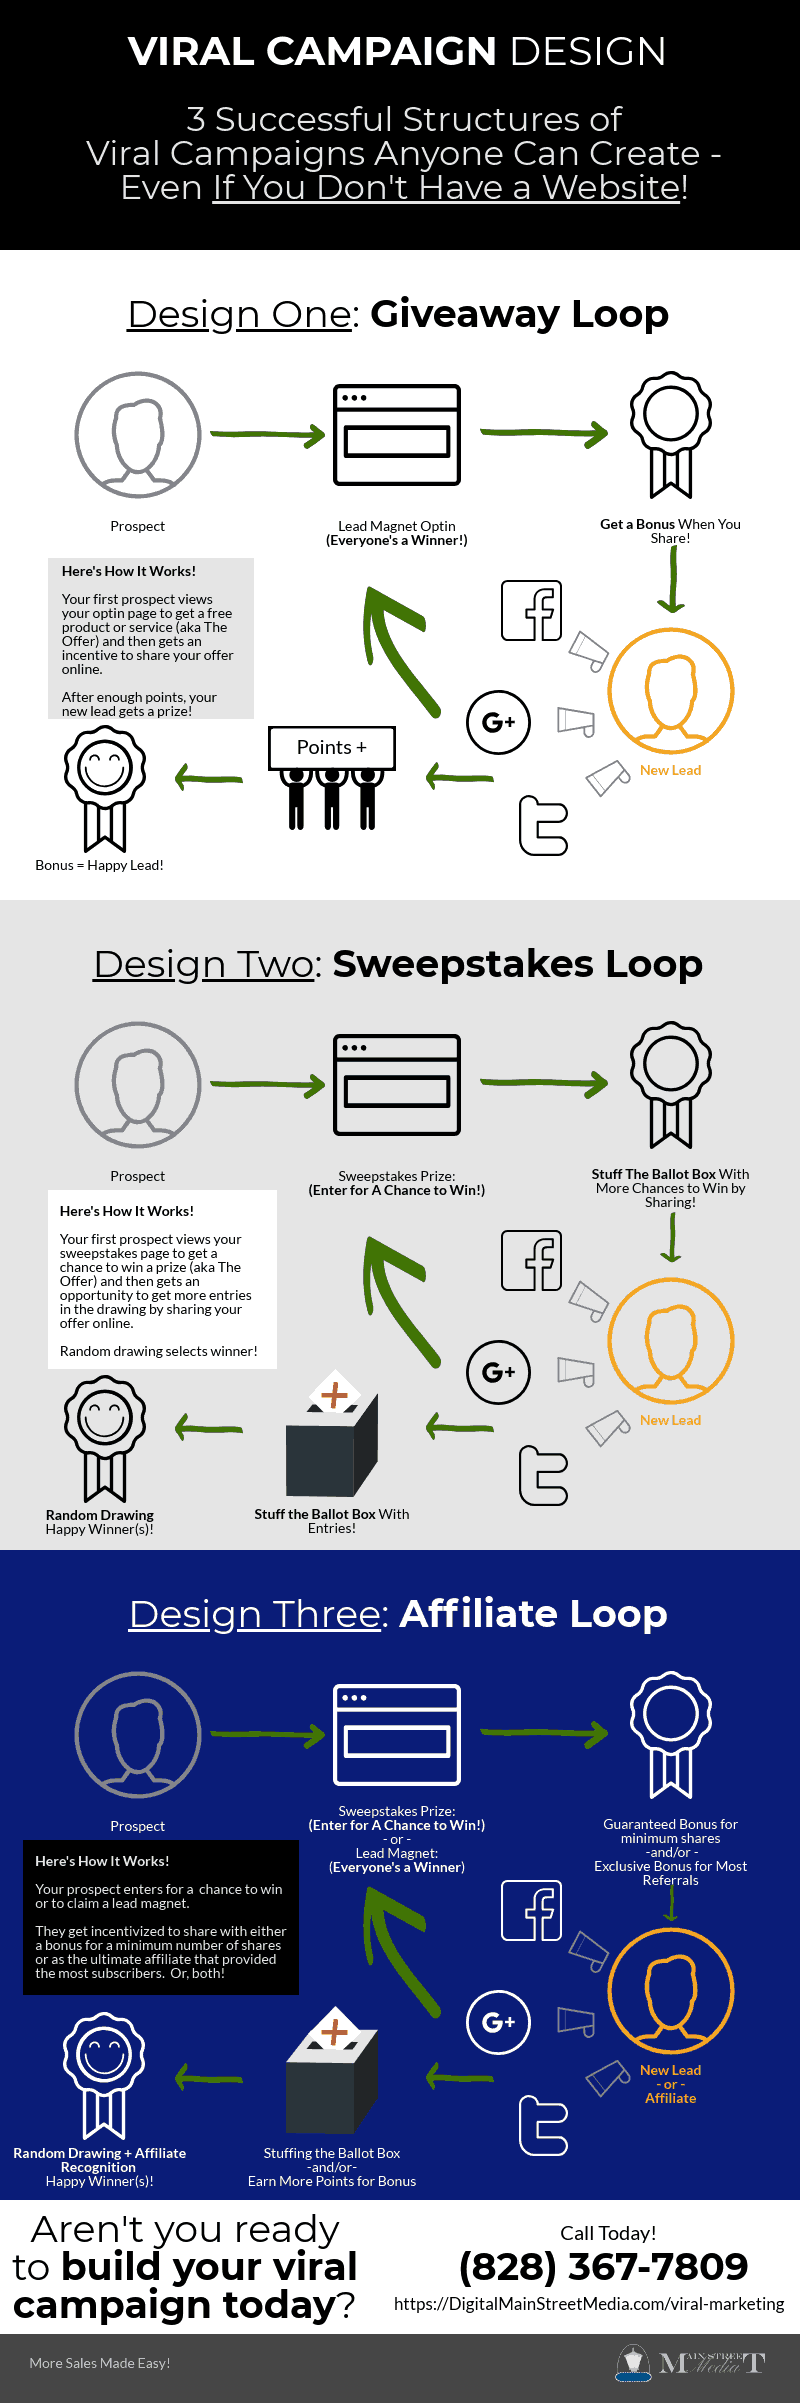 How Do You Design a Viral Campaign Infographic